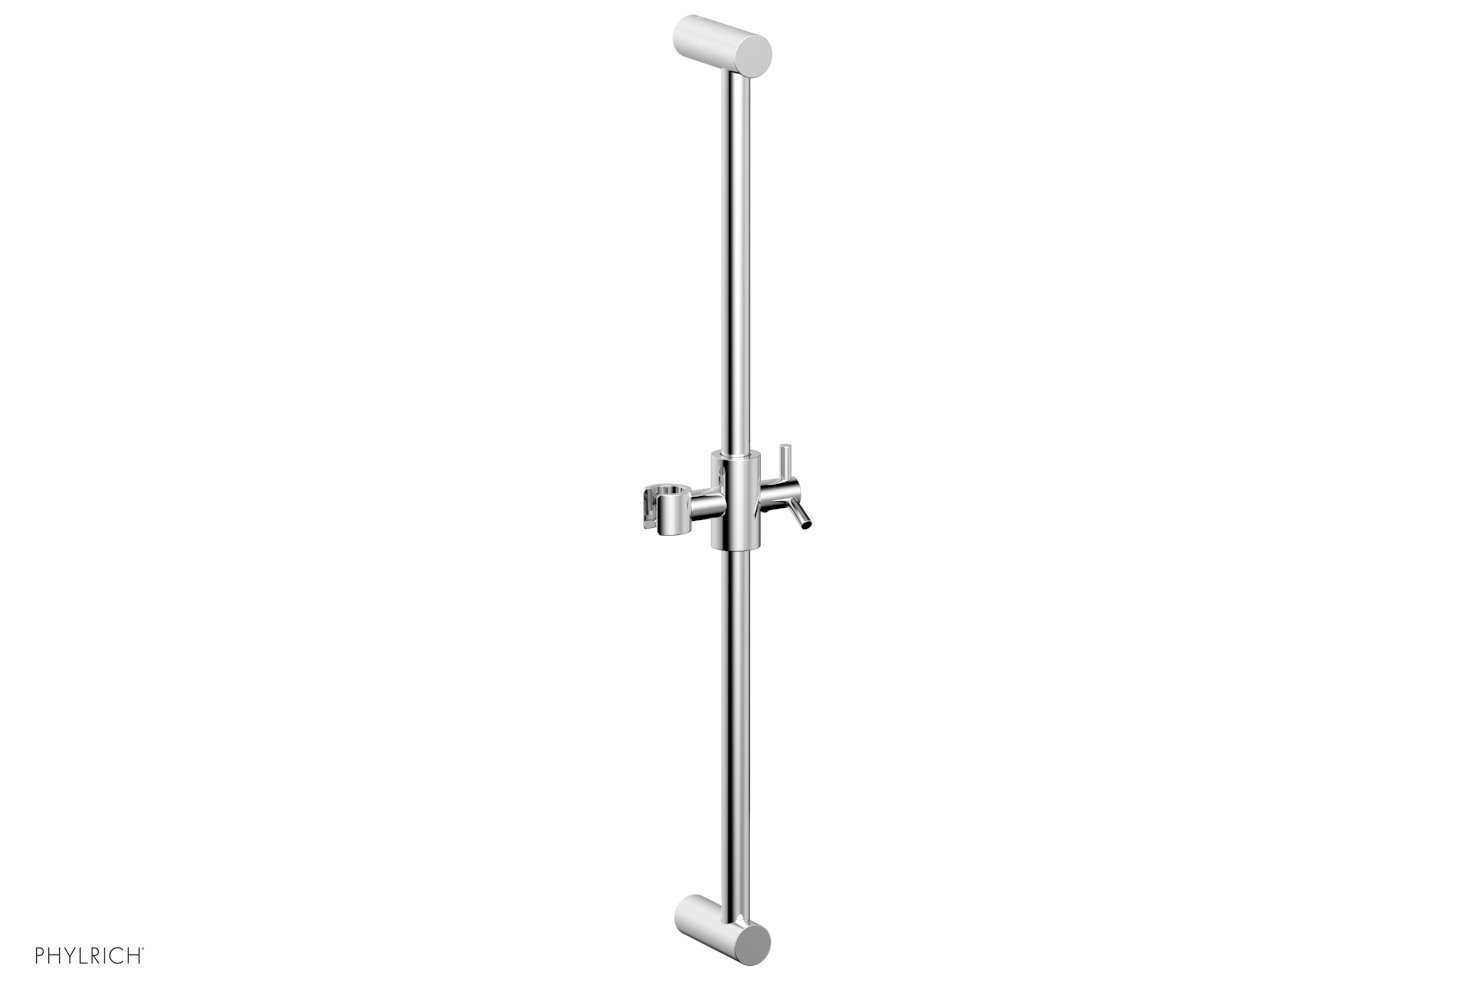 PHYLRICH K6025 WALL MOUNT 24 INCH ADJUSTABLE SLIDE BAR WITH HOOK